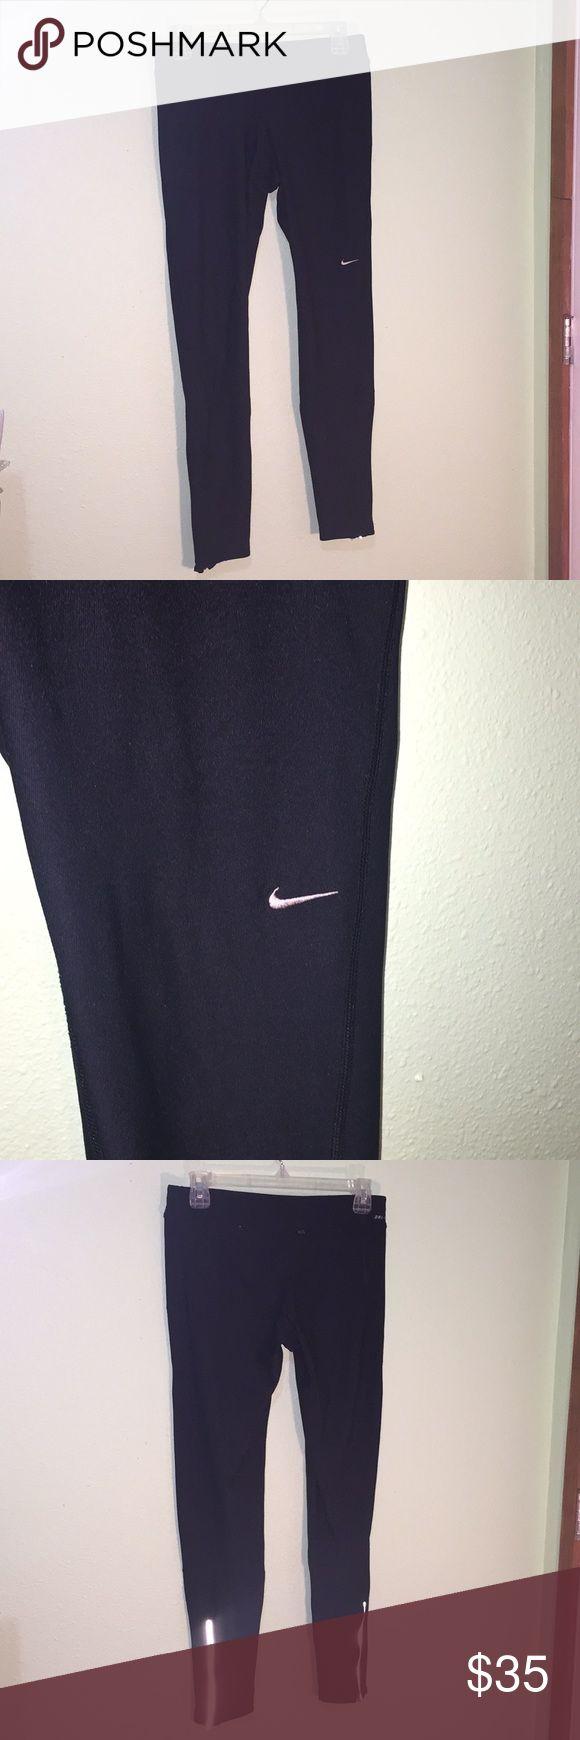 Nike Running Tights Size Medium Dri Fit Nike running leggings. Excellent used condition, barely worn. No pilling, holes or stains. Includes a Drawstring for a more custom fit. Zippers at the bottom of each leg with reflective strips. Nike Pants Leggings